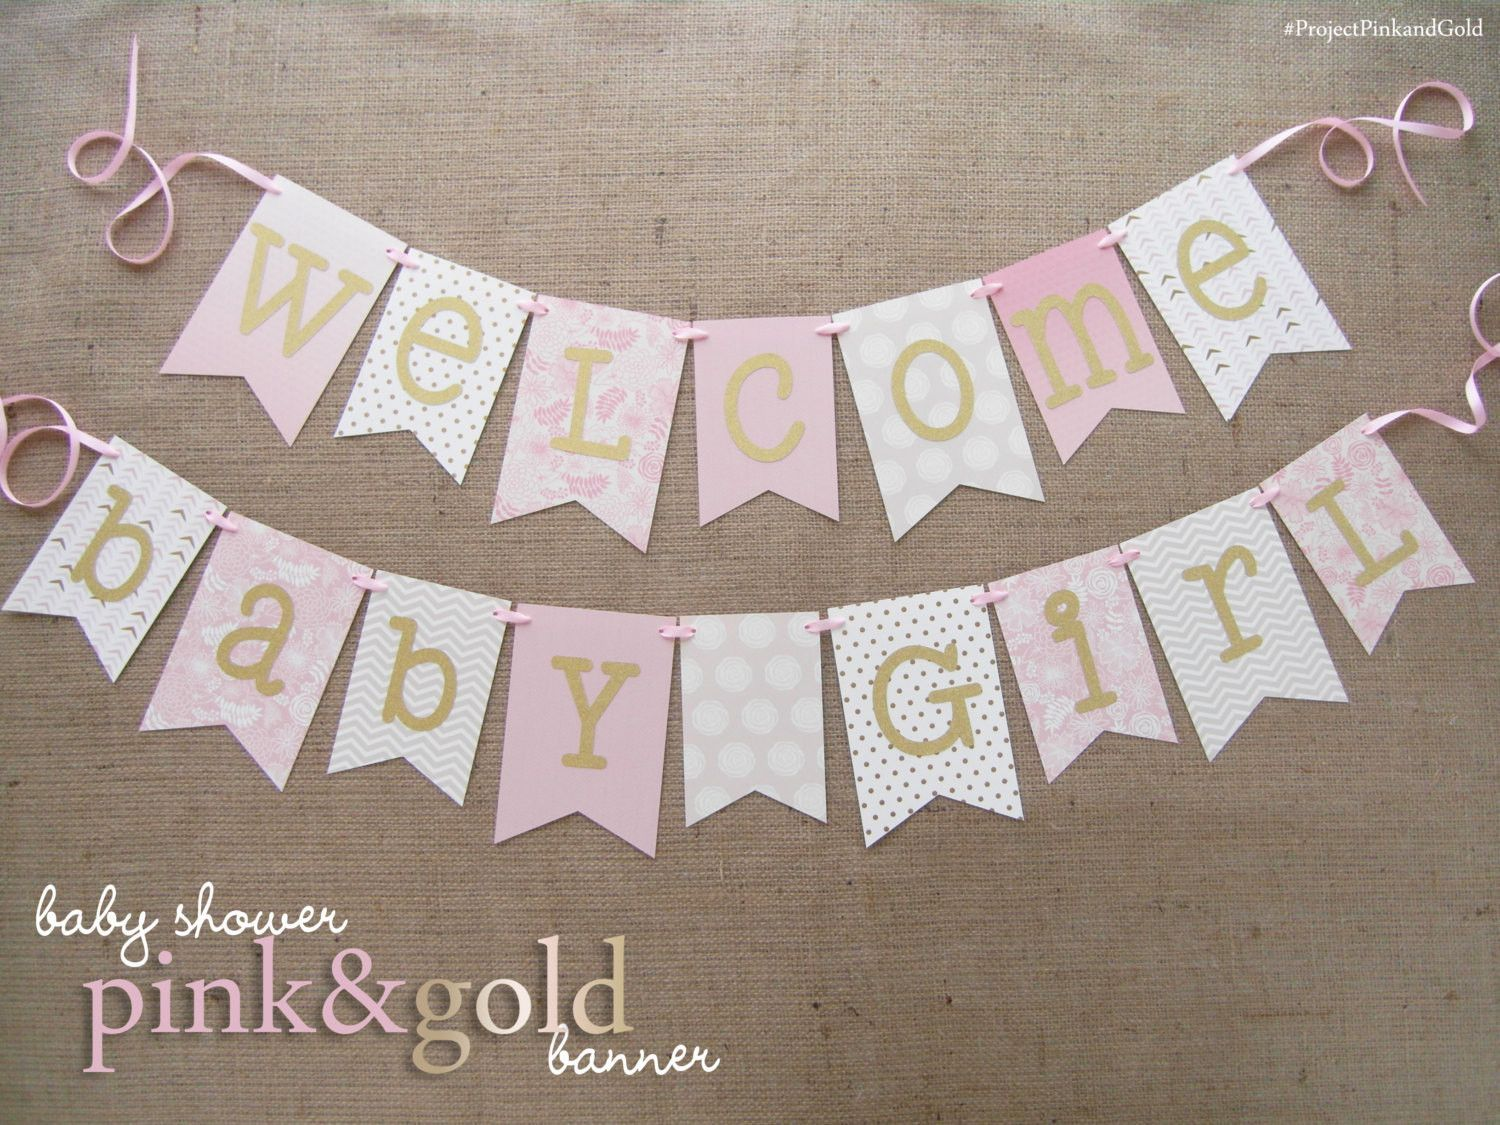 welcome baby girl pink and gold patterned medium weight cardstock gold glitter letters spans about 28 inches and 48 inches additional 12 inches of